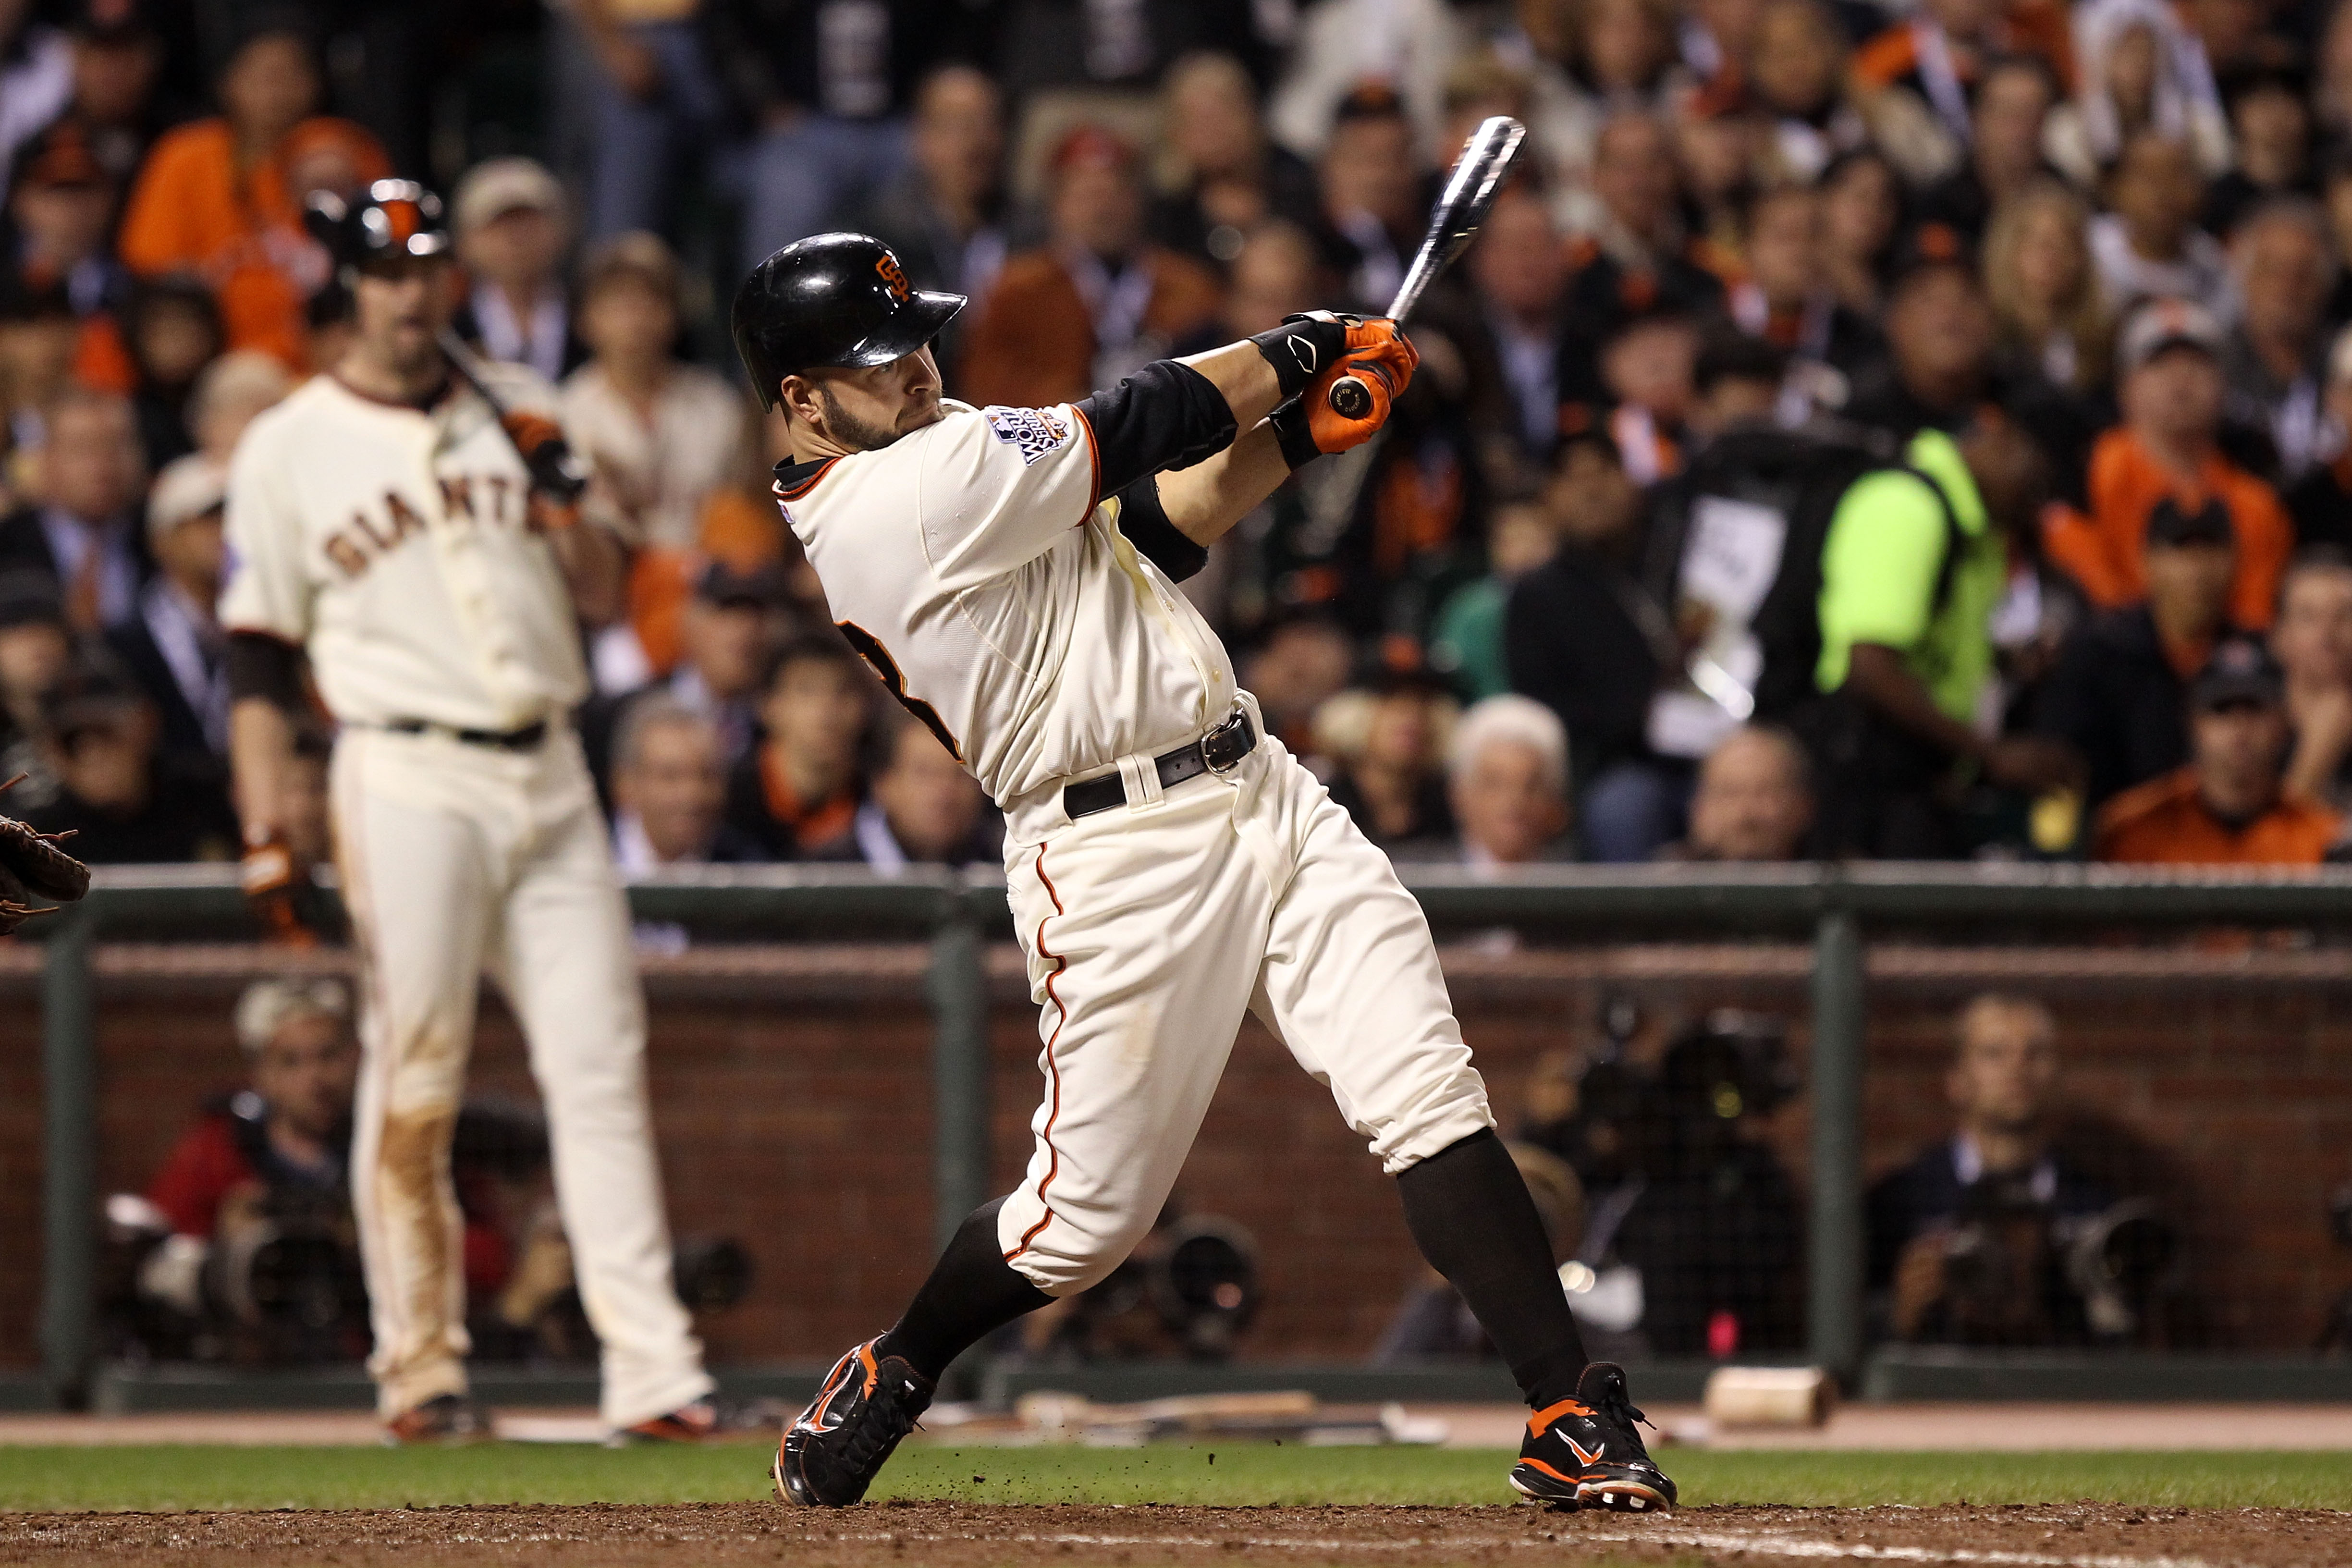 SAN FRANCISCO - OCTOBER 27:  Cody Ross #13 of the San Francisco Giants hits an RBI single against in the fifth inning against the Texas Rangers in Game One of the 2010 MLB World Series at AT&T Park on October 27, 2010 in San Francisco, California.  (Photo